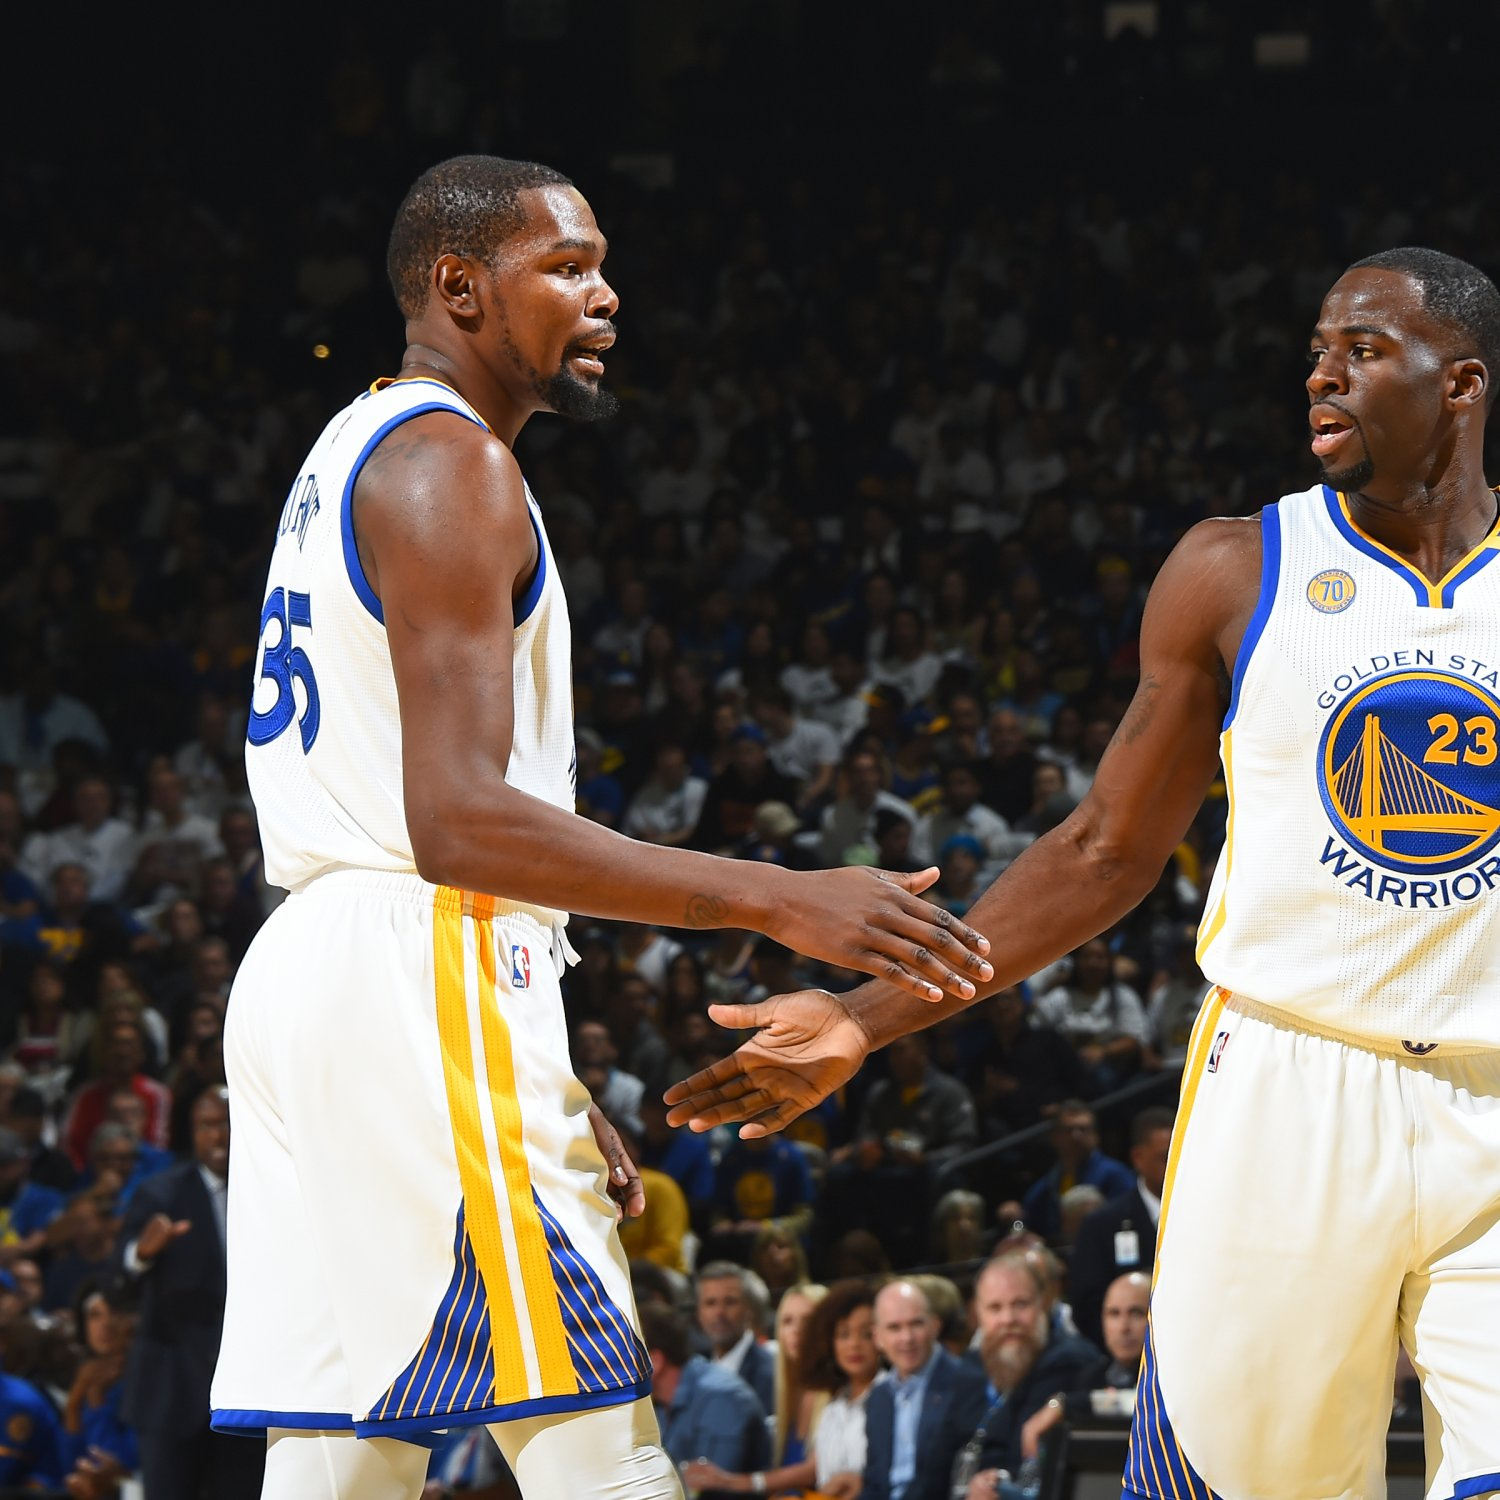 Warriors Vs. Pelicans: Live Score, Highlights And Reaction